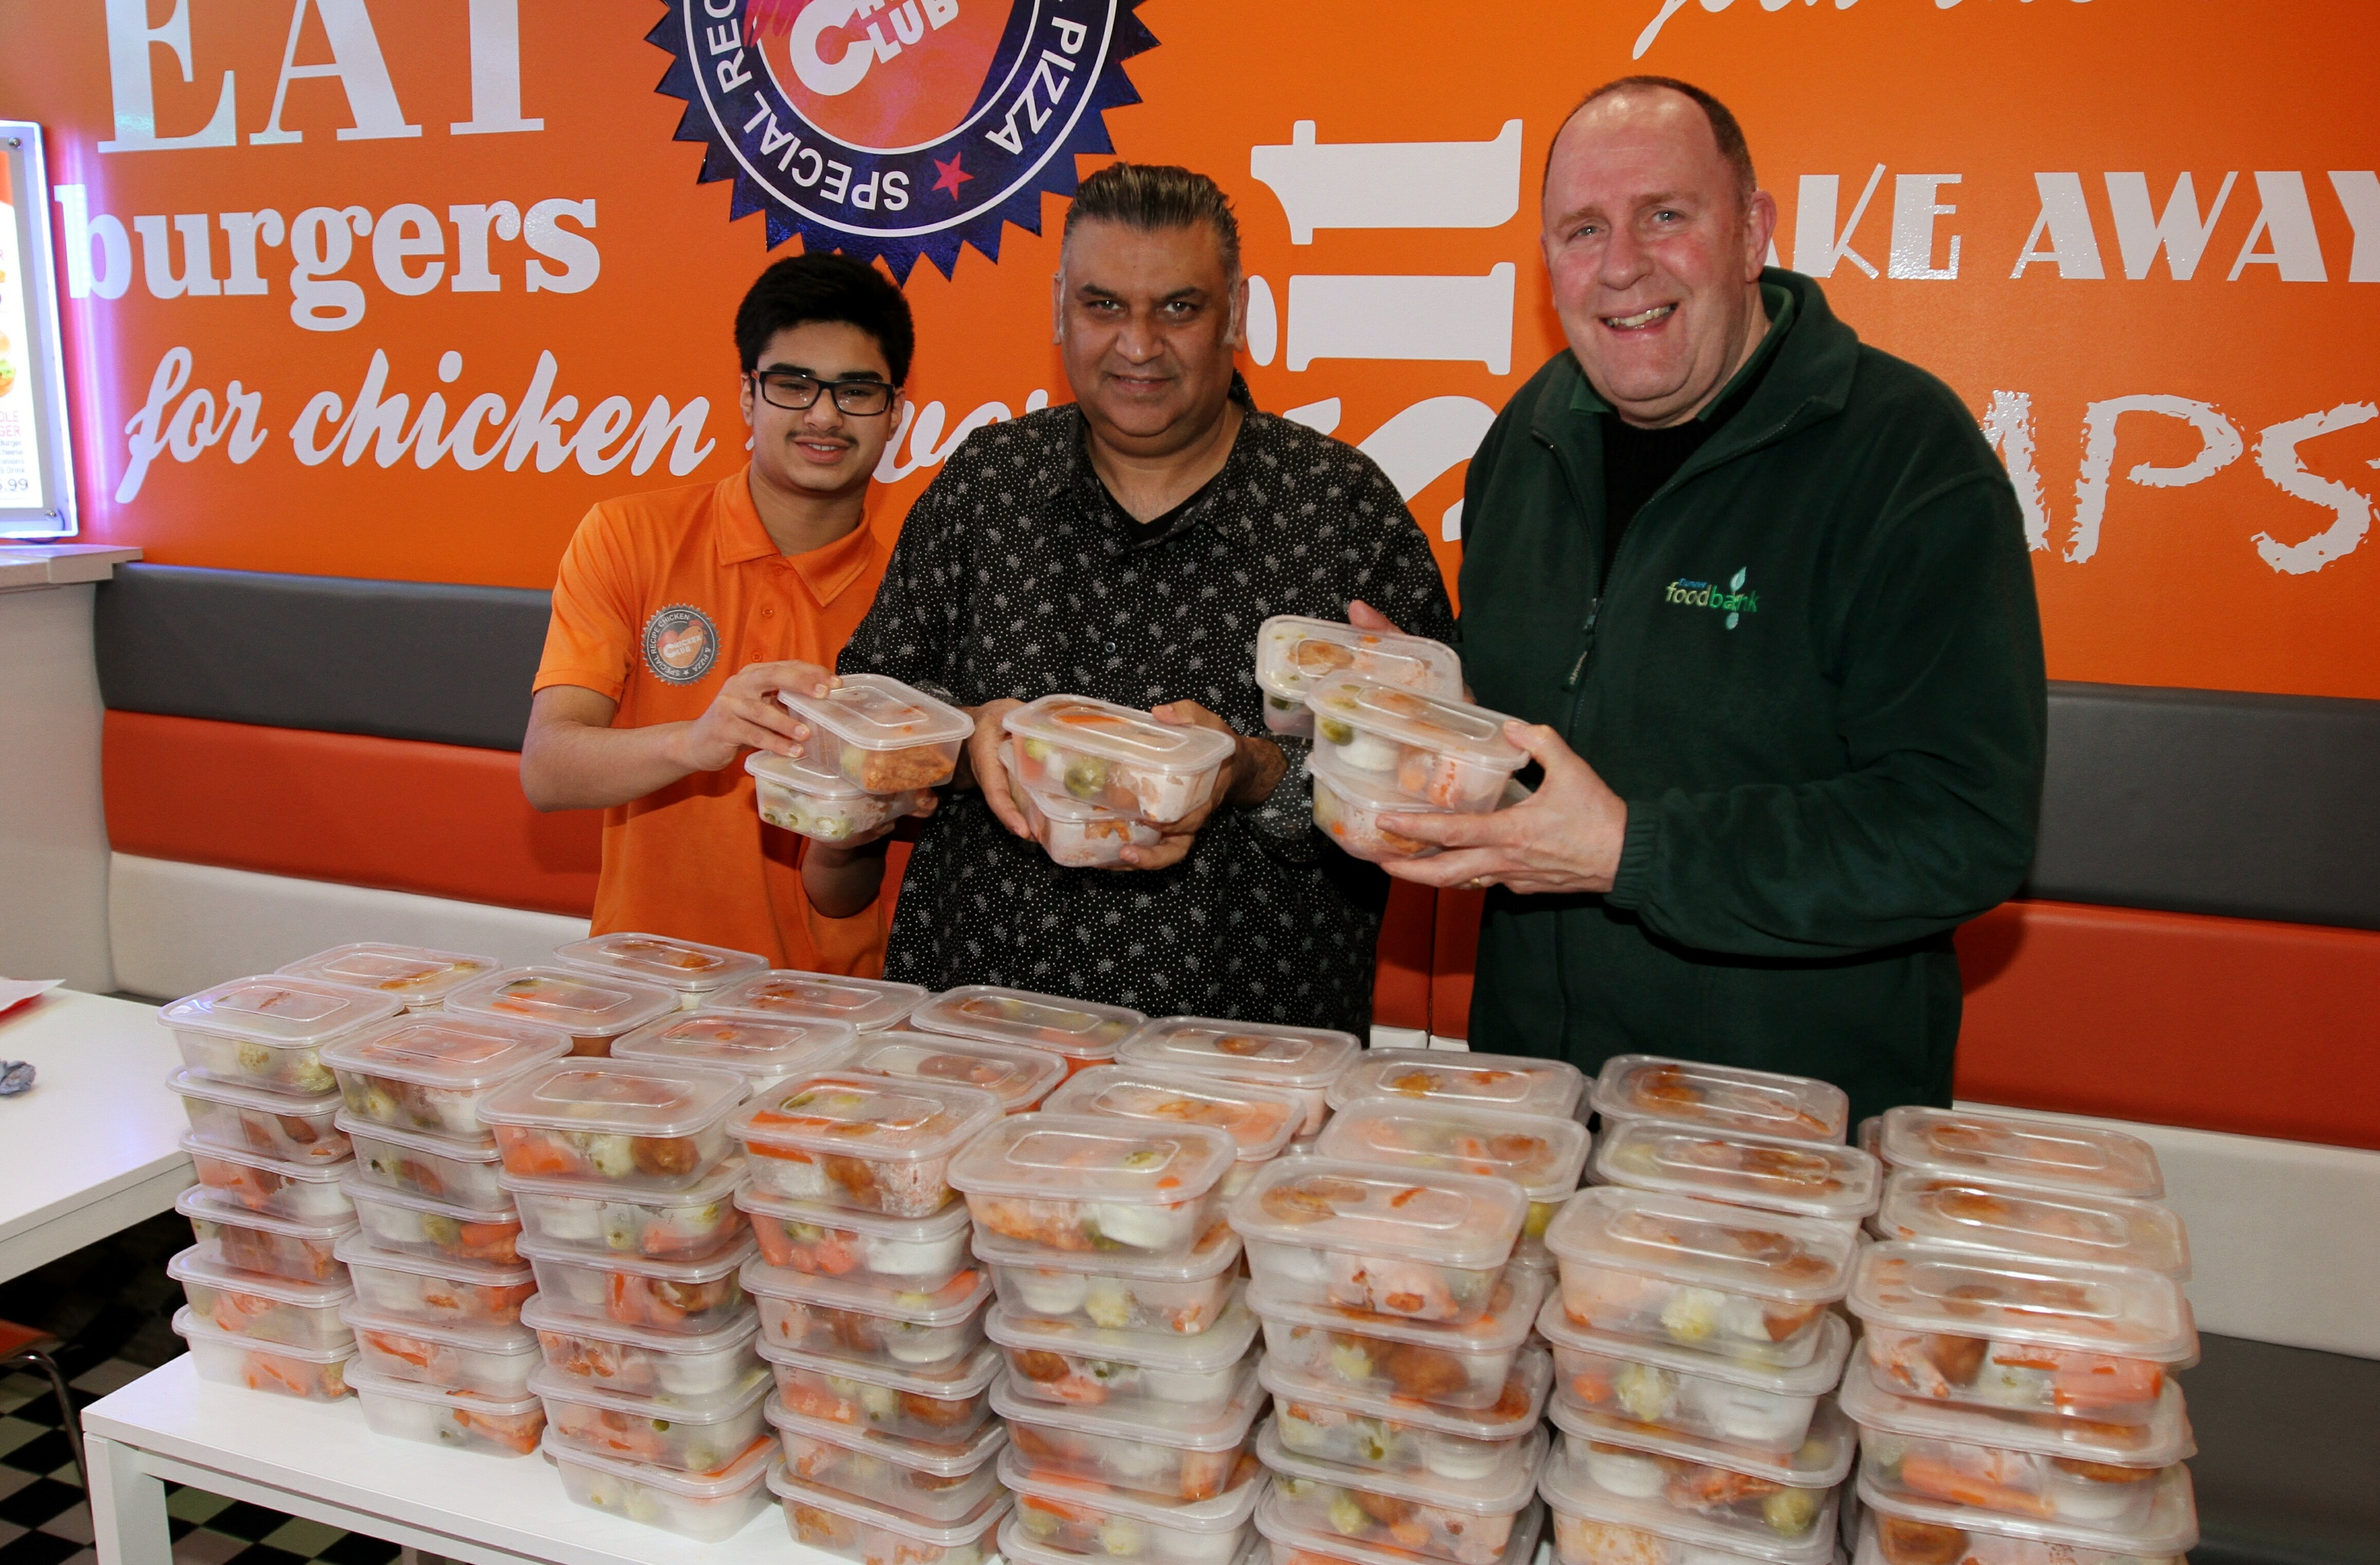 Ken Linton (right) of the Dundee Foodbank accepts meals from Daud Sheikh and Ibrar Ibrahim of the Chicken Club.